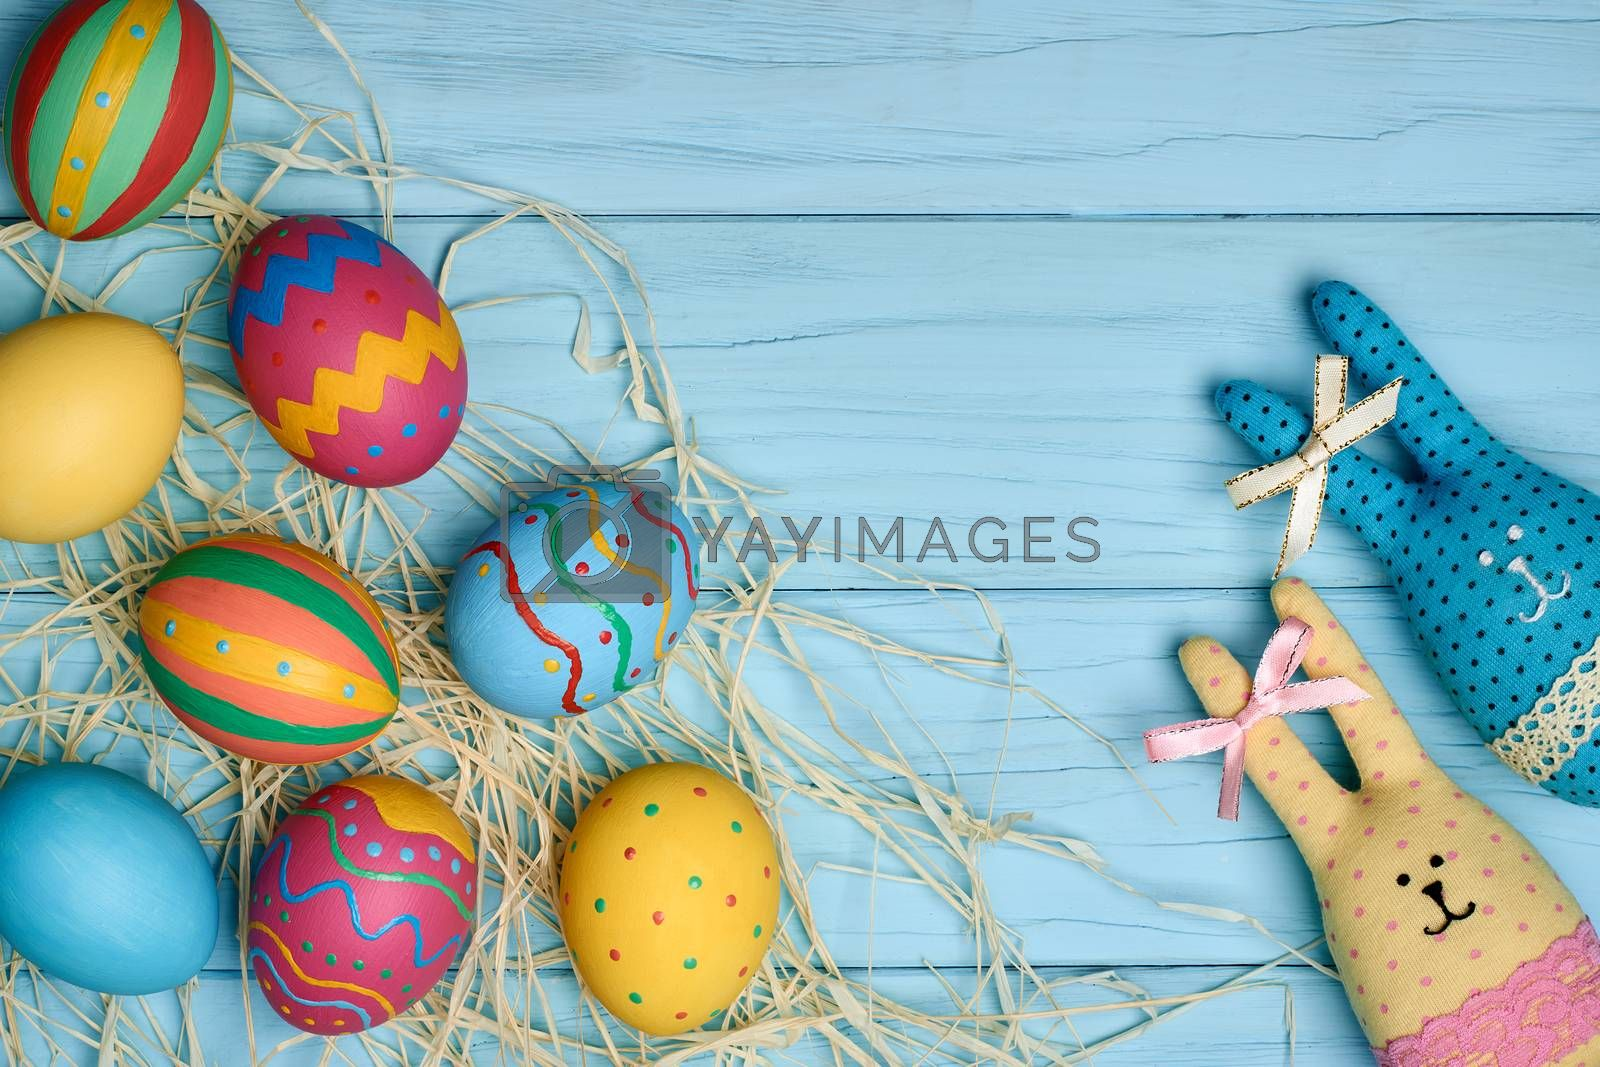 Easter eggs and rabbits. Happy bunny handmade and hand painted multicolored decorated eggs on green straw nest, blue wooden background, copyspace. Unusual creative holiday greeting card